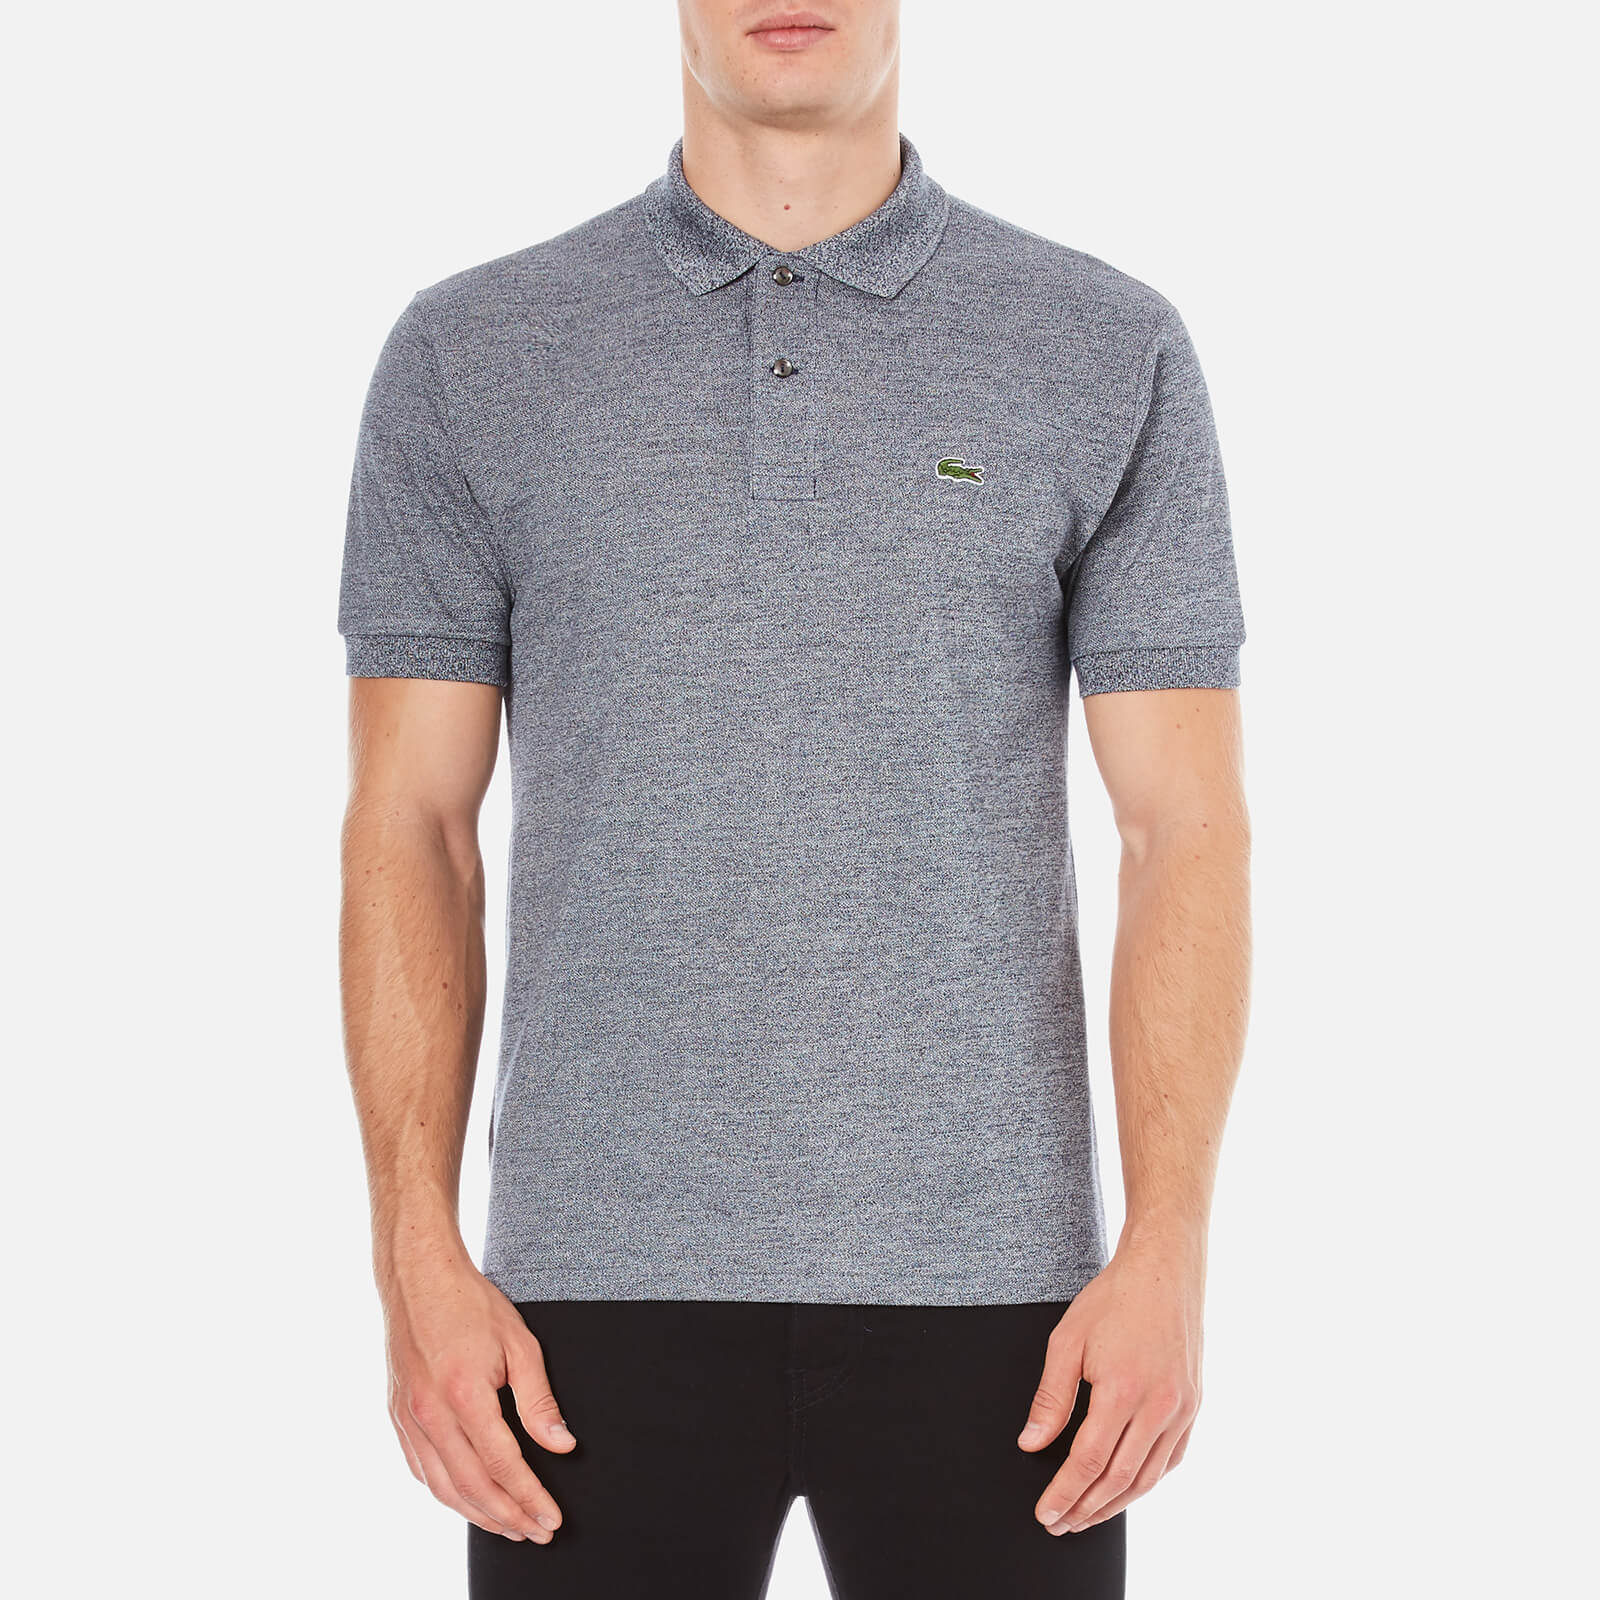 78fa8a9b3 Lacoste Men s Basic Pique Short Sleeve Marl Polo Shirt - Navy Blue Mouline  - Free UK Delivery over £50